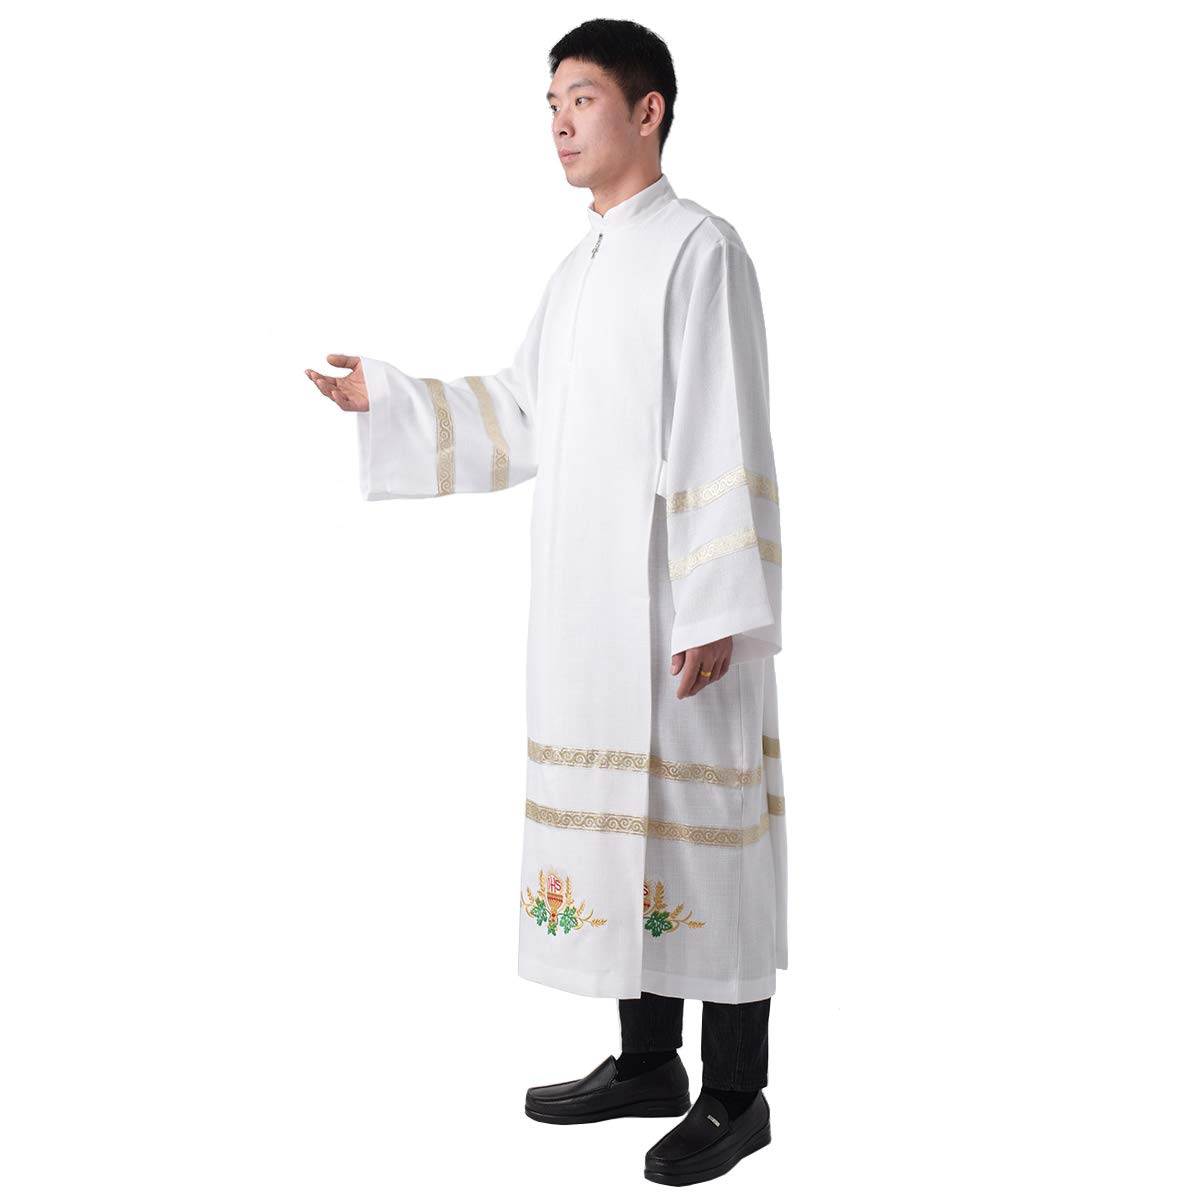 BLESSUME Church ALB Embroidered Vestments